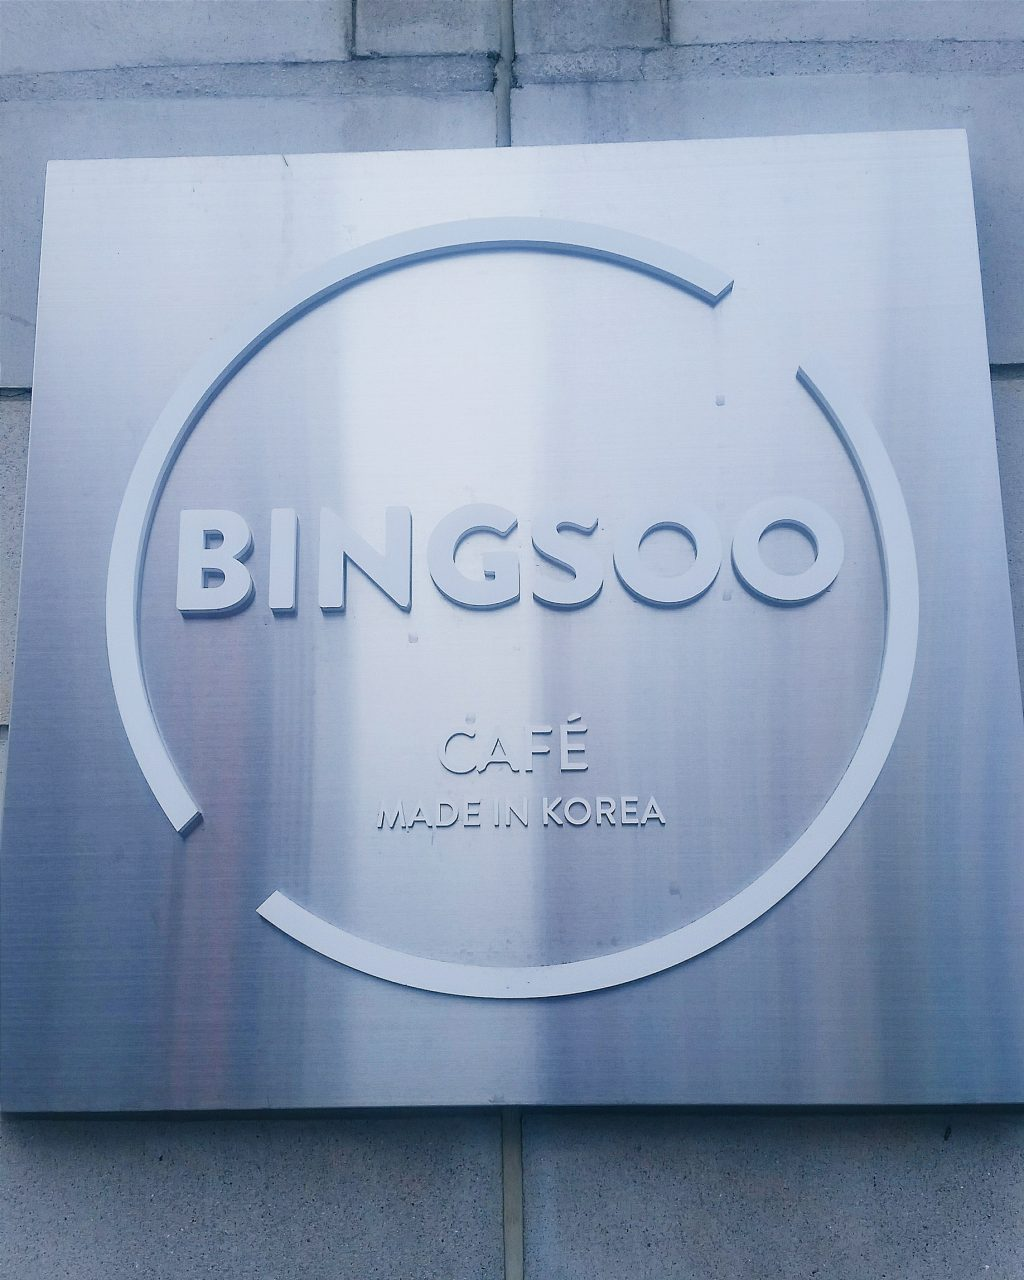 bingsoo cafe sign